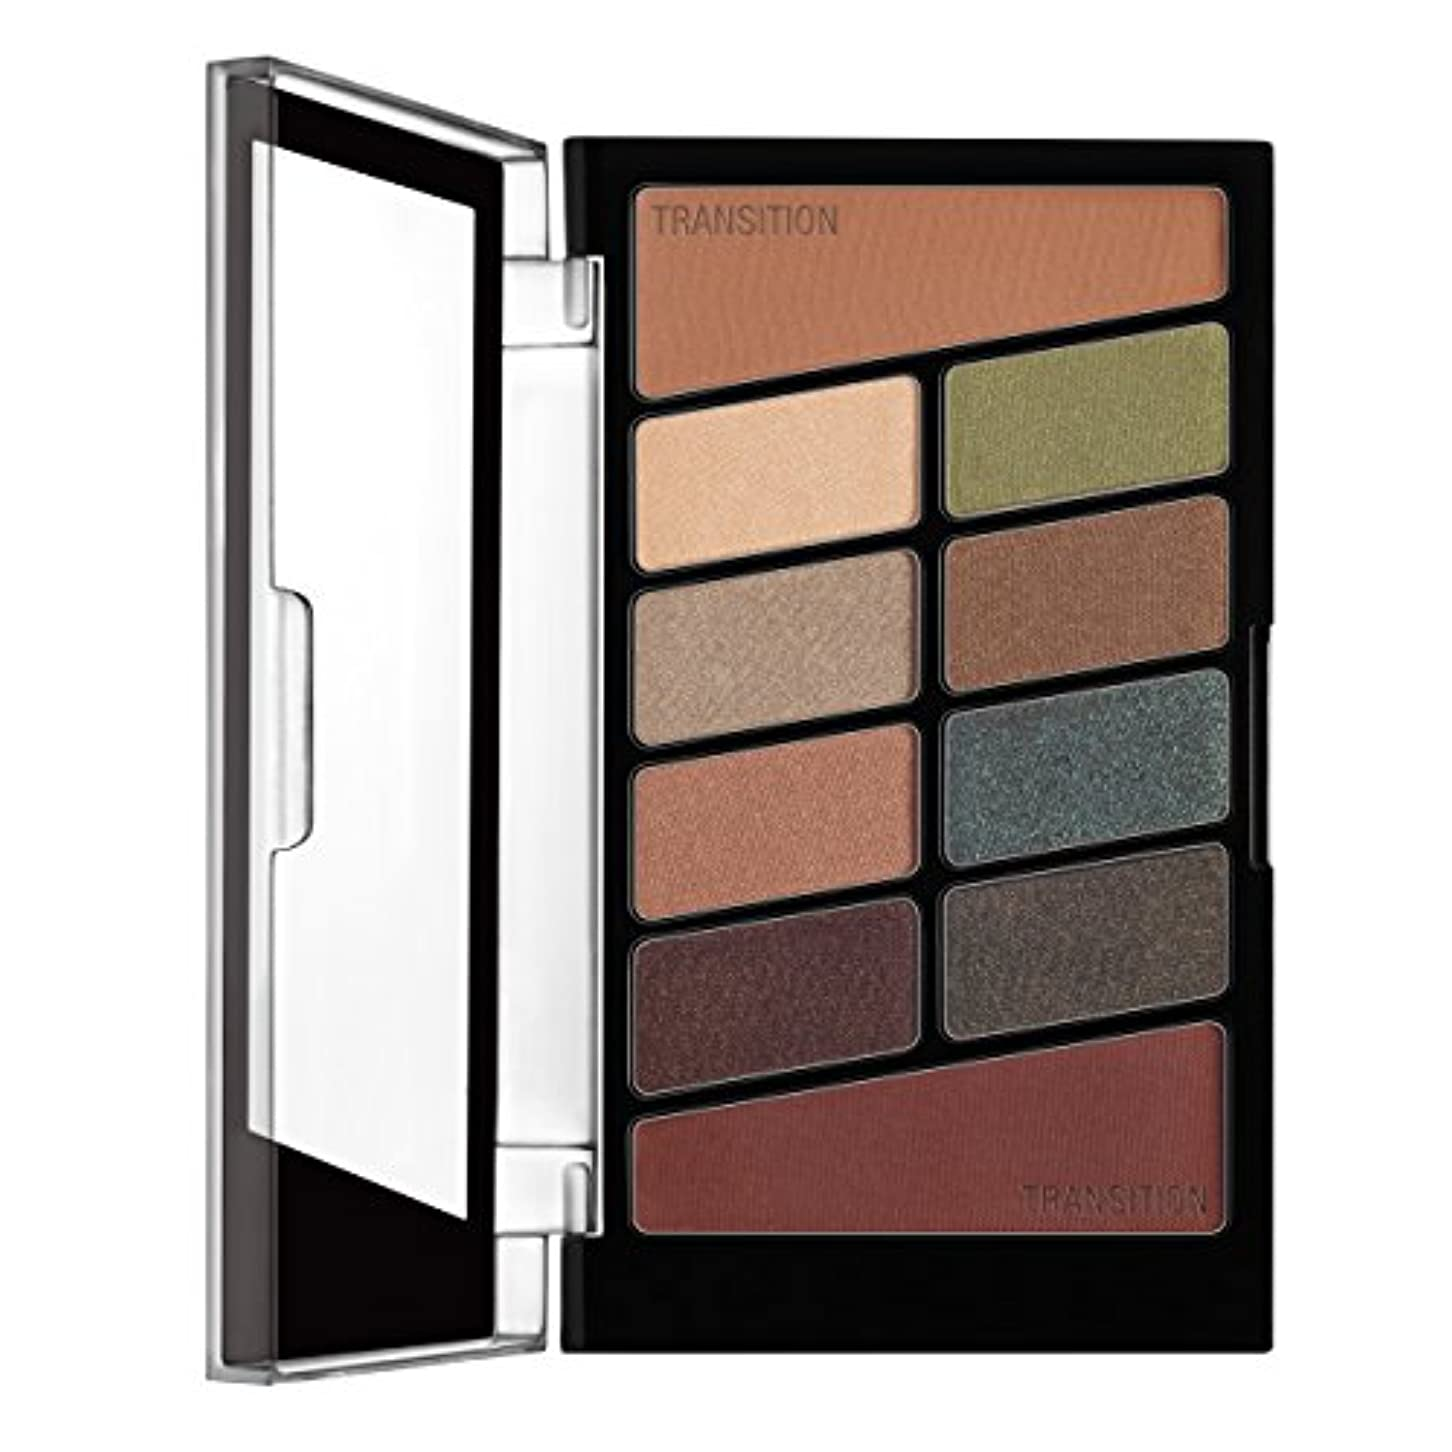 スポット多数の候補者WET N WILD Color Icon Eyeshadow 10 Pan Palette - Comfort Zone (並行輸入品)